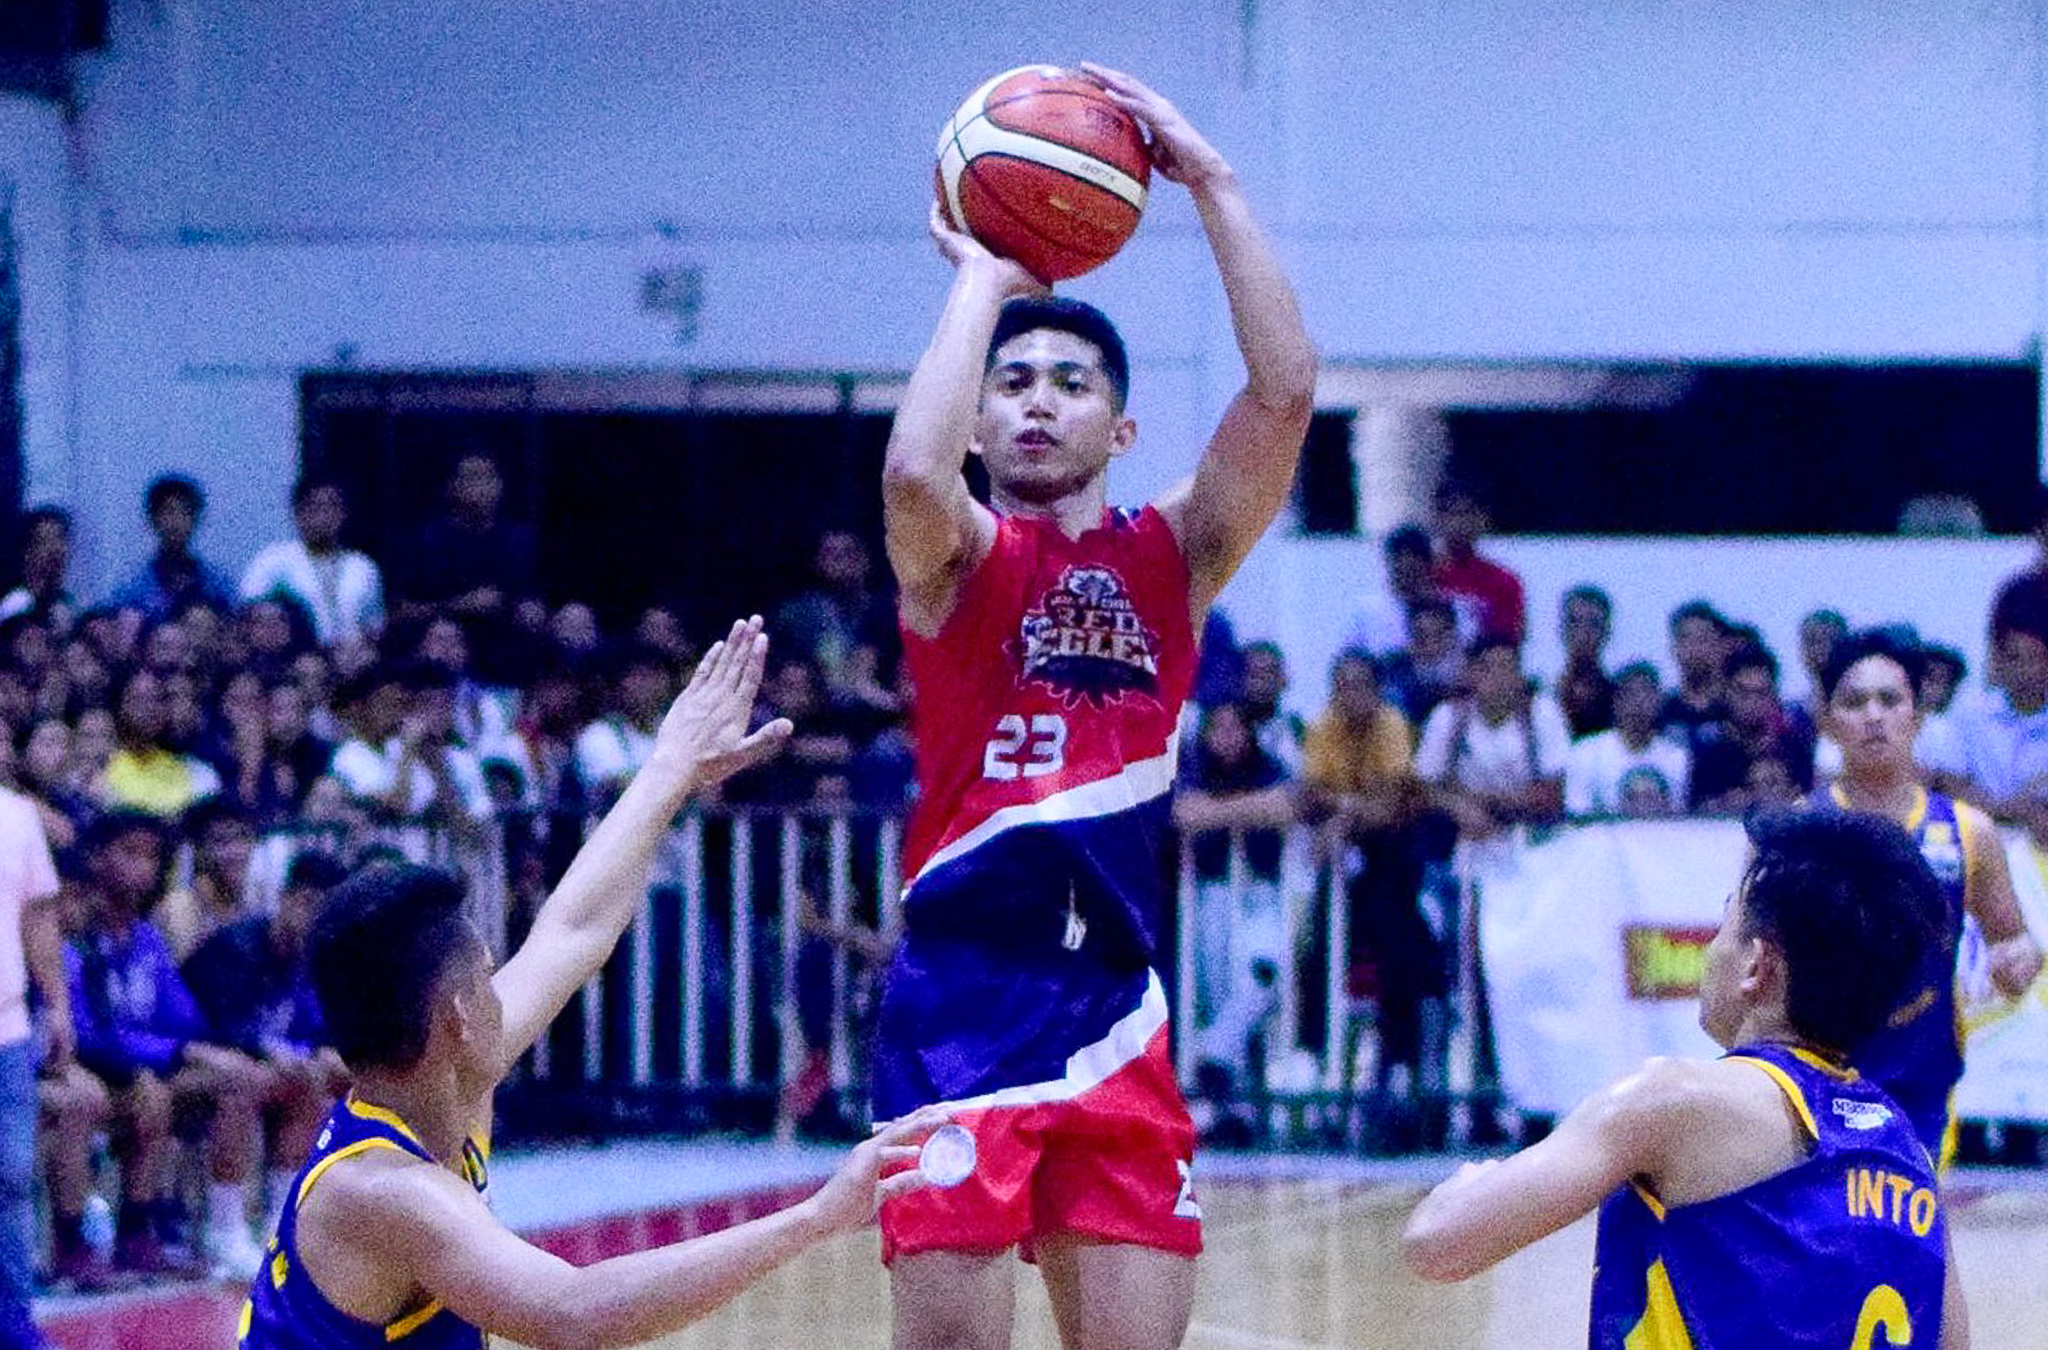 Holy Child of Davao ace Aljay Alloso transfers to San Beda